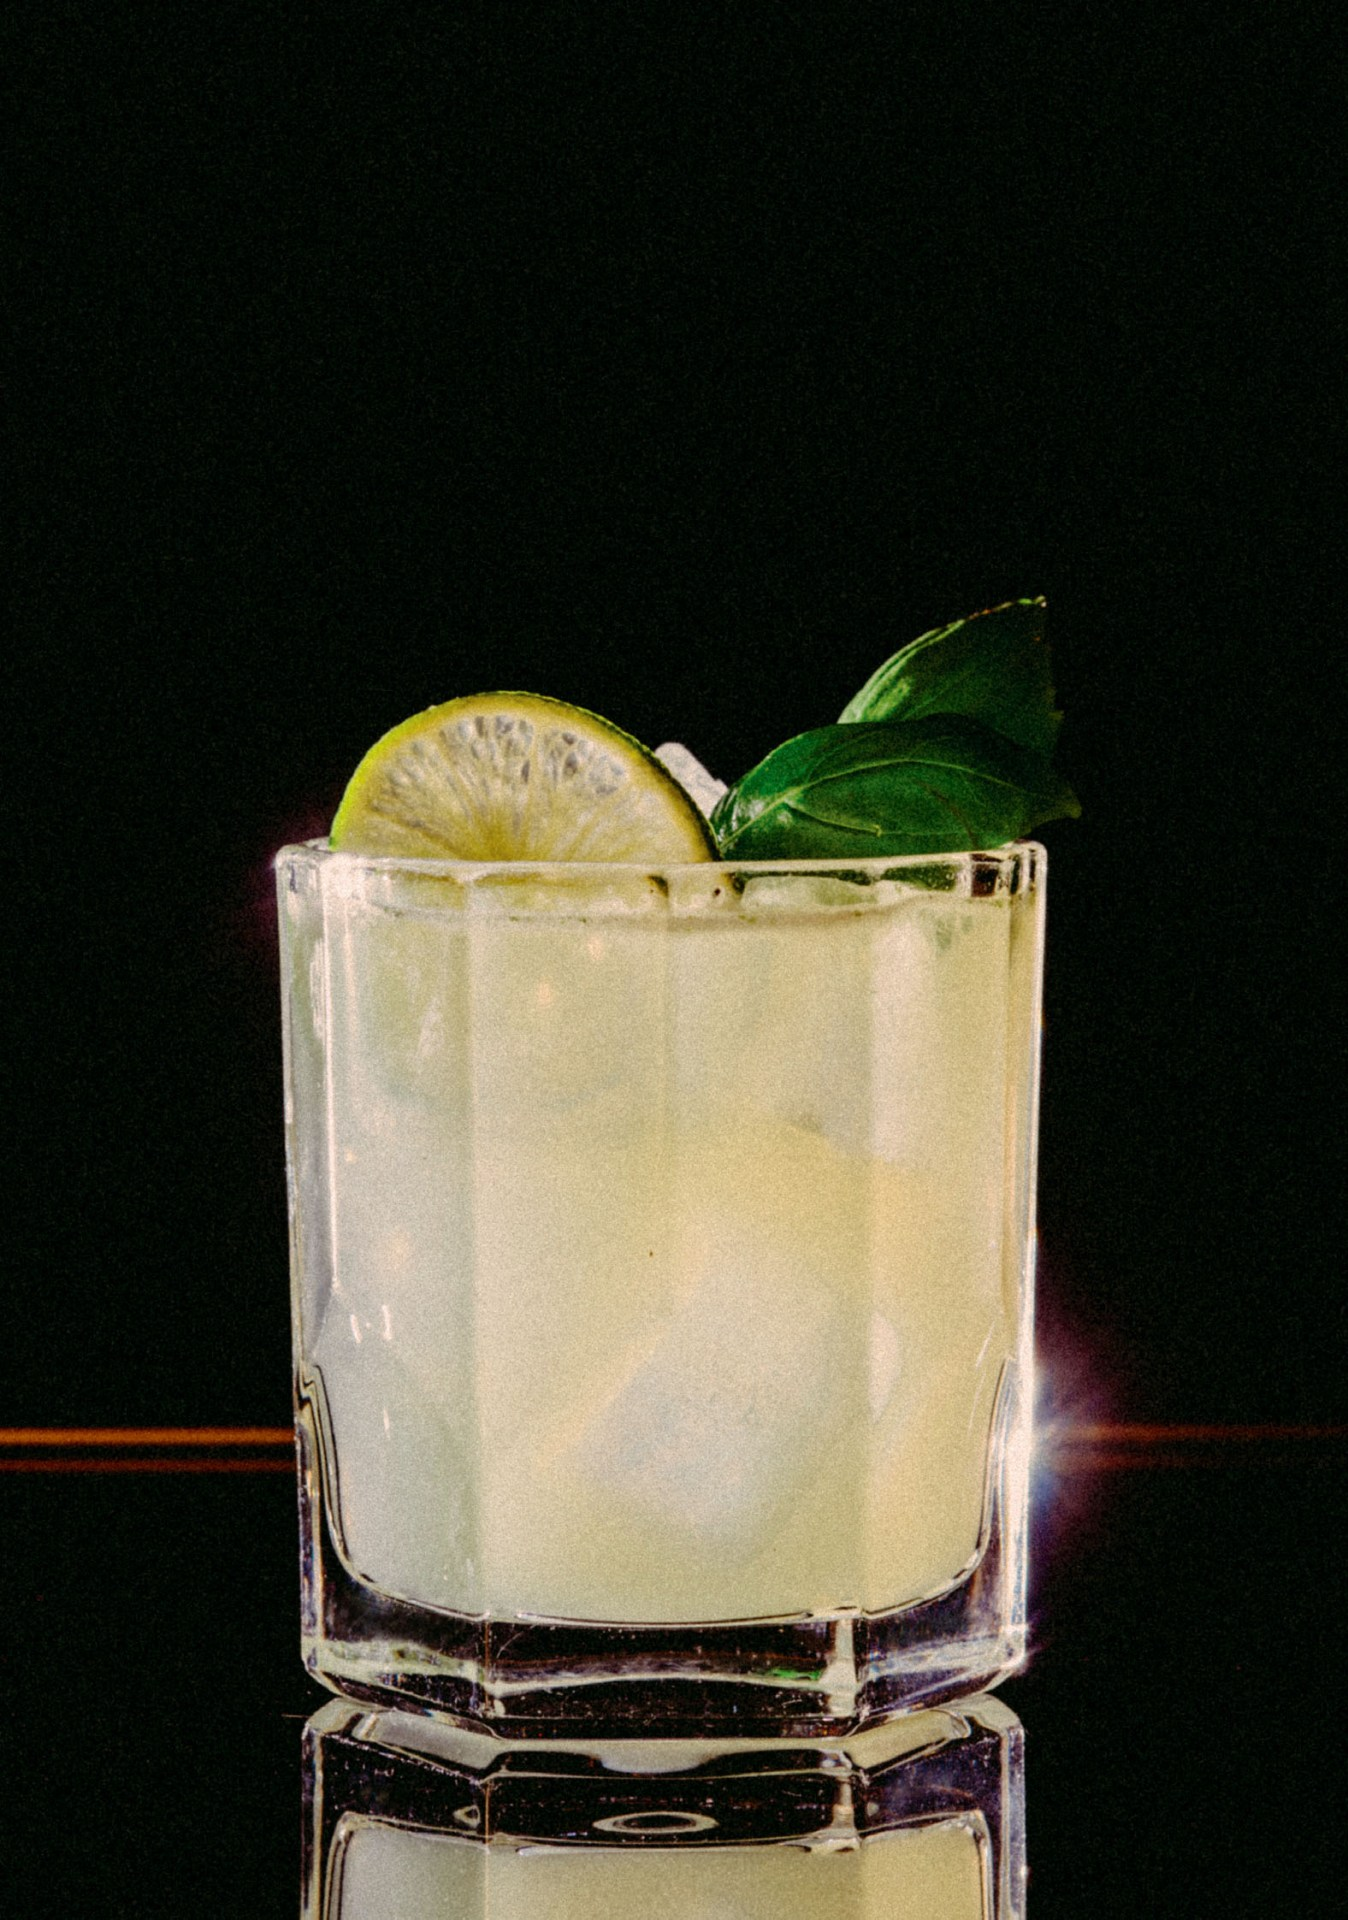 Recipe: 5cl Plymouth Gin 3cl Lime Juice 2cl Sugar Syrup Basil Leaves